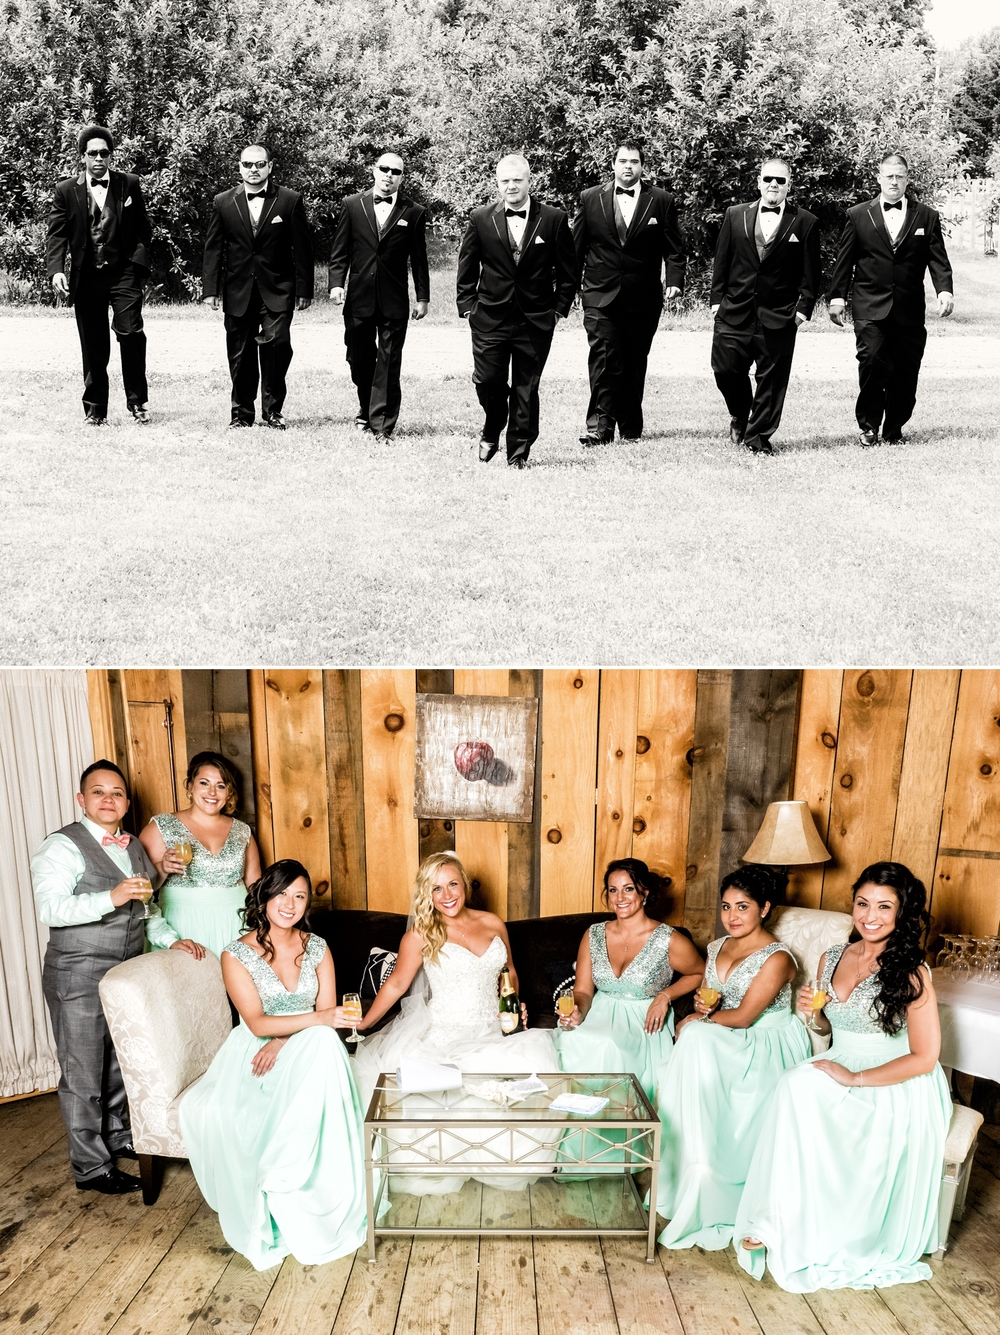 The wedding party at County Line Orchard.